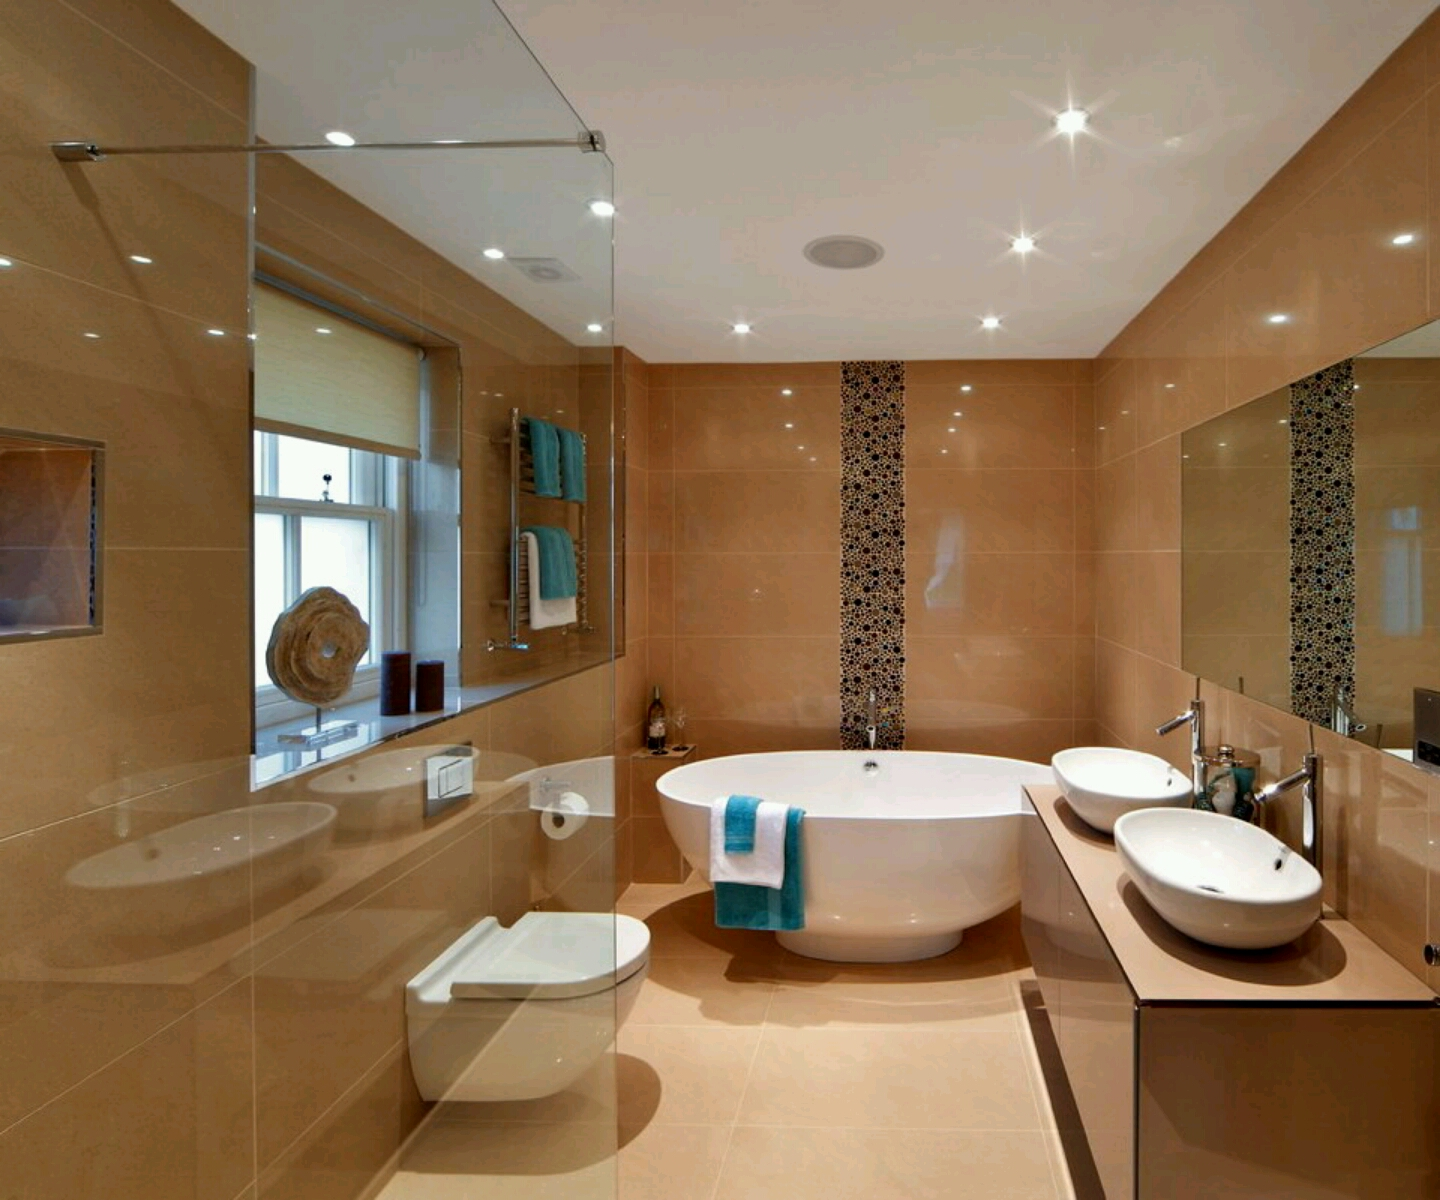 New home designs latest luxury modern bathrooms designs for New home bathroom ideas